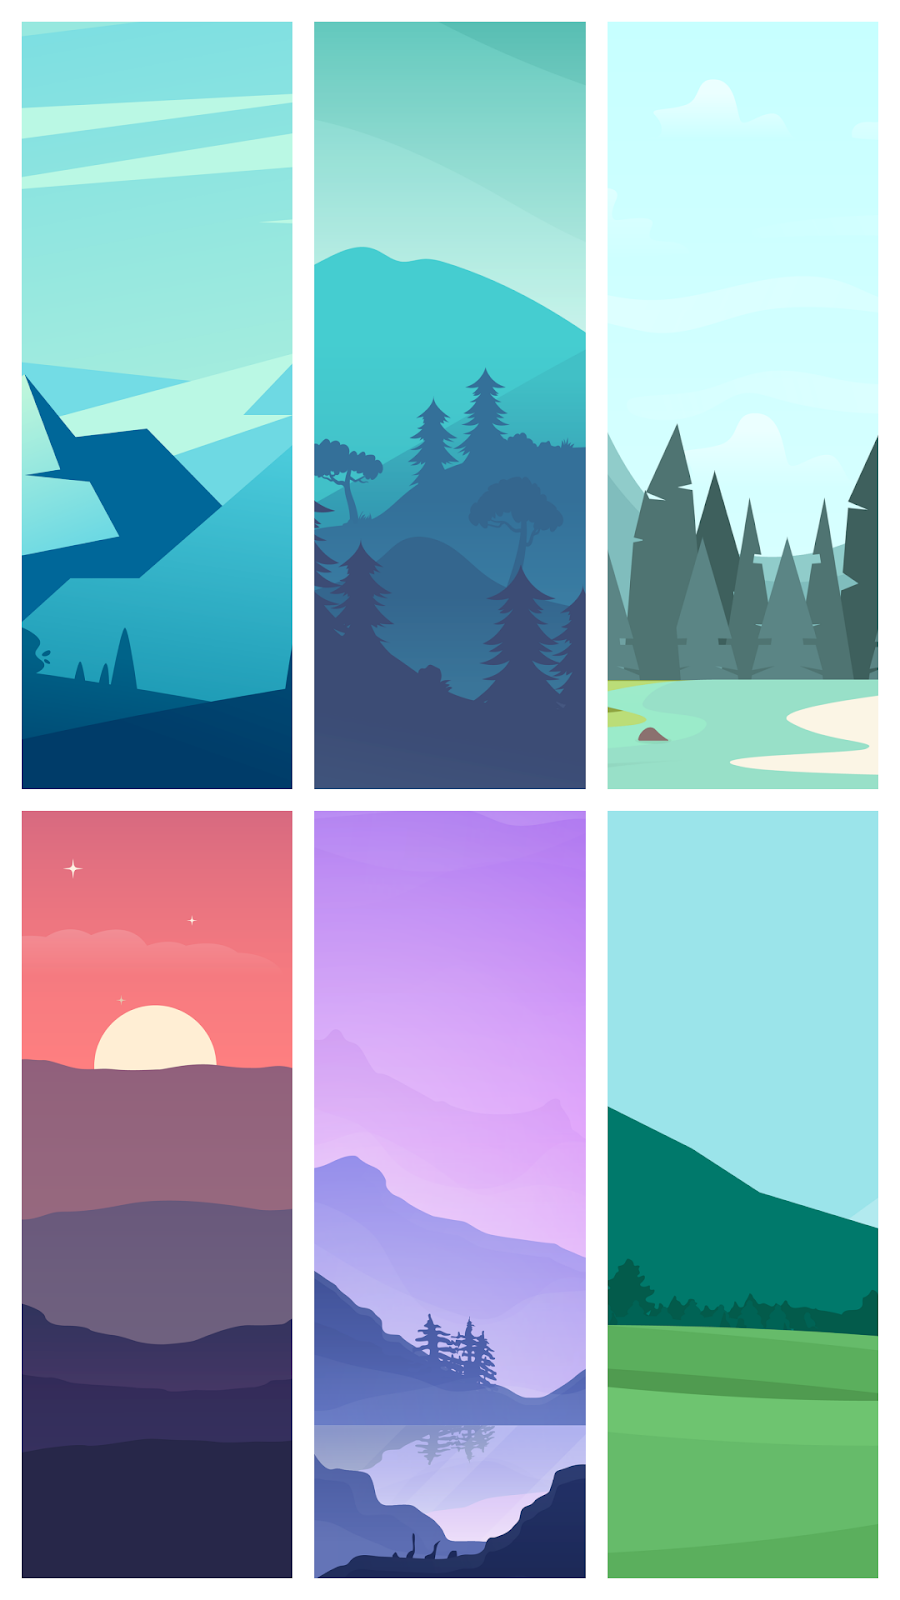 6 beautiful minimalist wallpapers for iphone and android ...